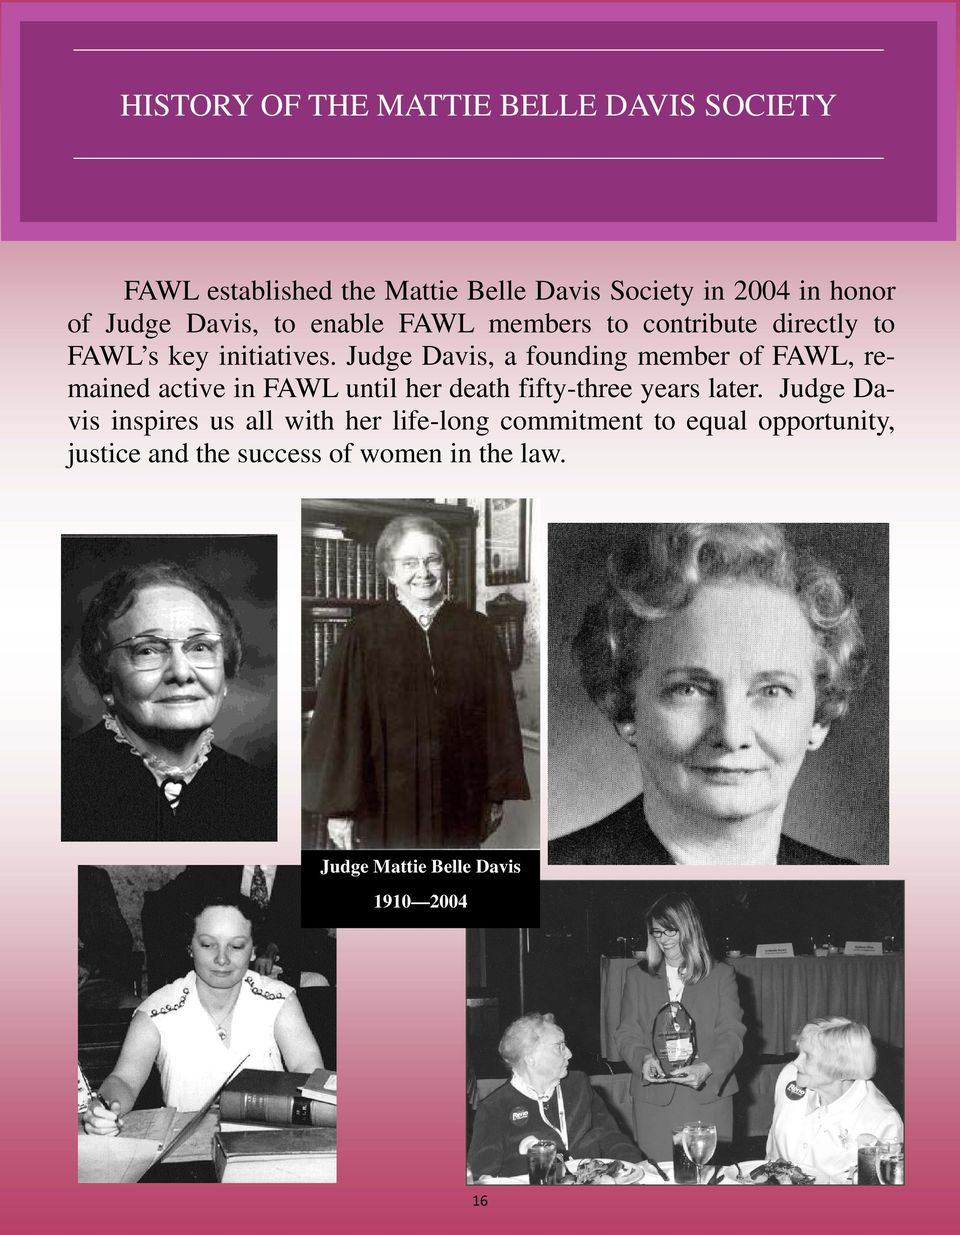 Judge Davis, a founding member of FAWL, remained active in FAWL until her death fifty-three years later.